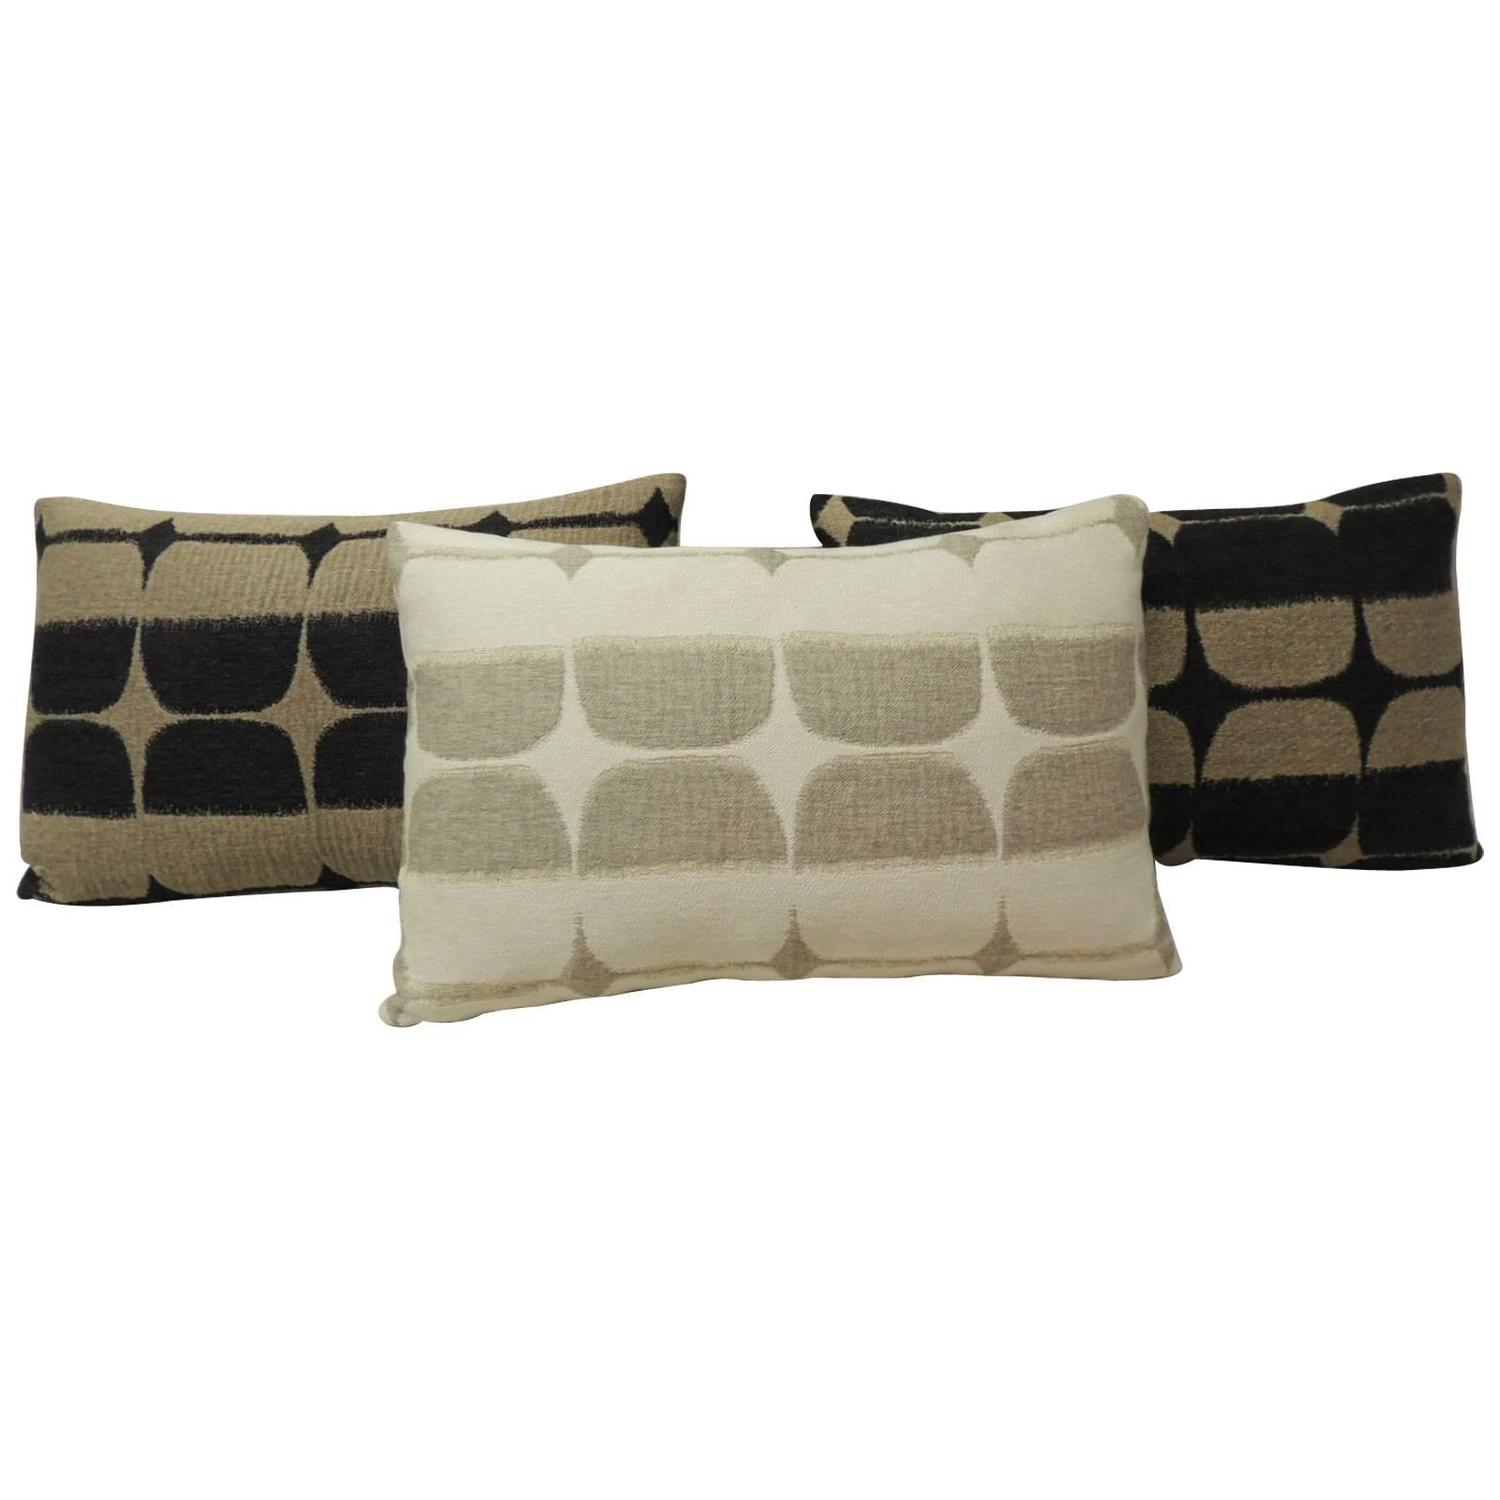 Modern Lumbar Pillows : Mid-Century Modern Lumbar Pillows For Sale at 1stdibs